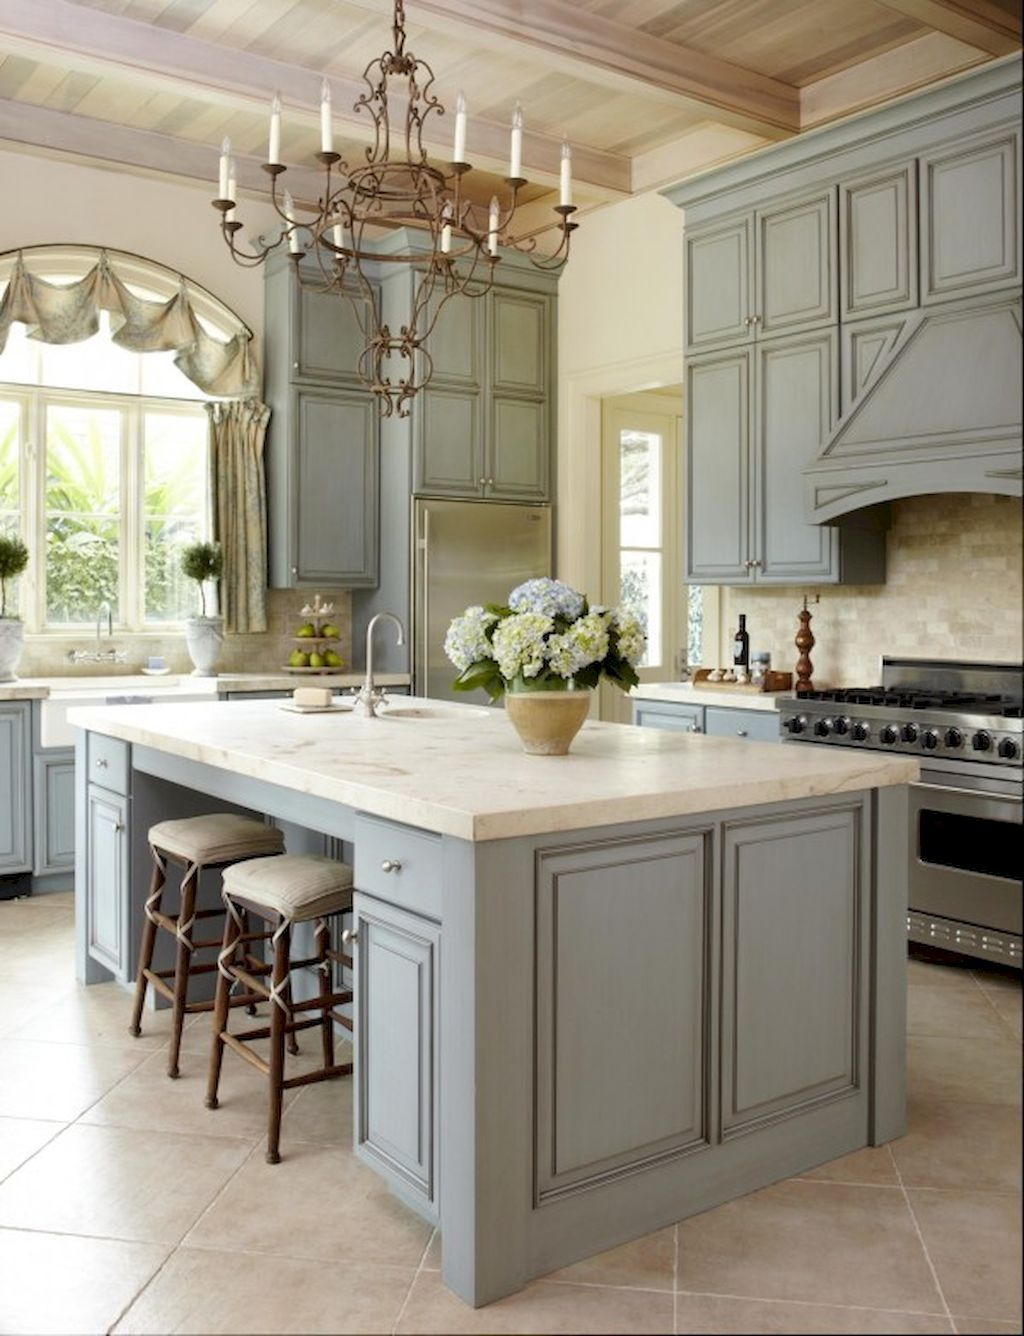 Charming Gorgeous 75 Modern French Country Kitchen Decorating Ideas  Https://decorapartment.com/75 Modern French Country Kitchen Decorating Ideas /